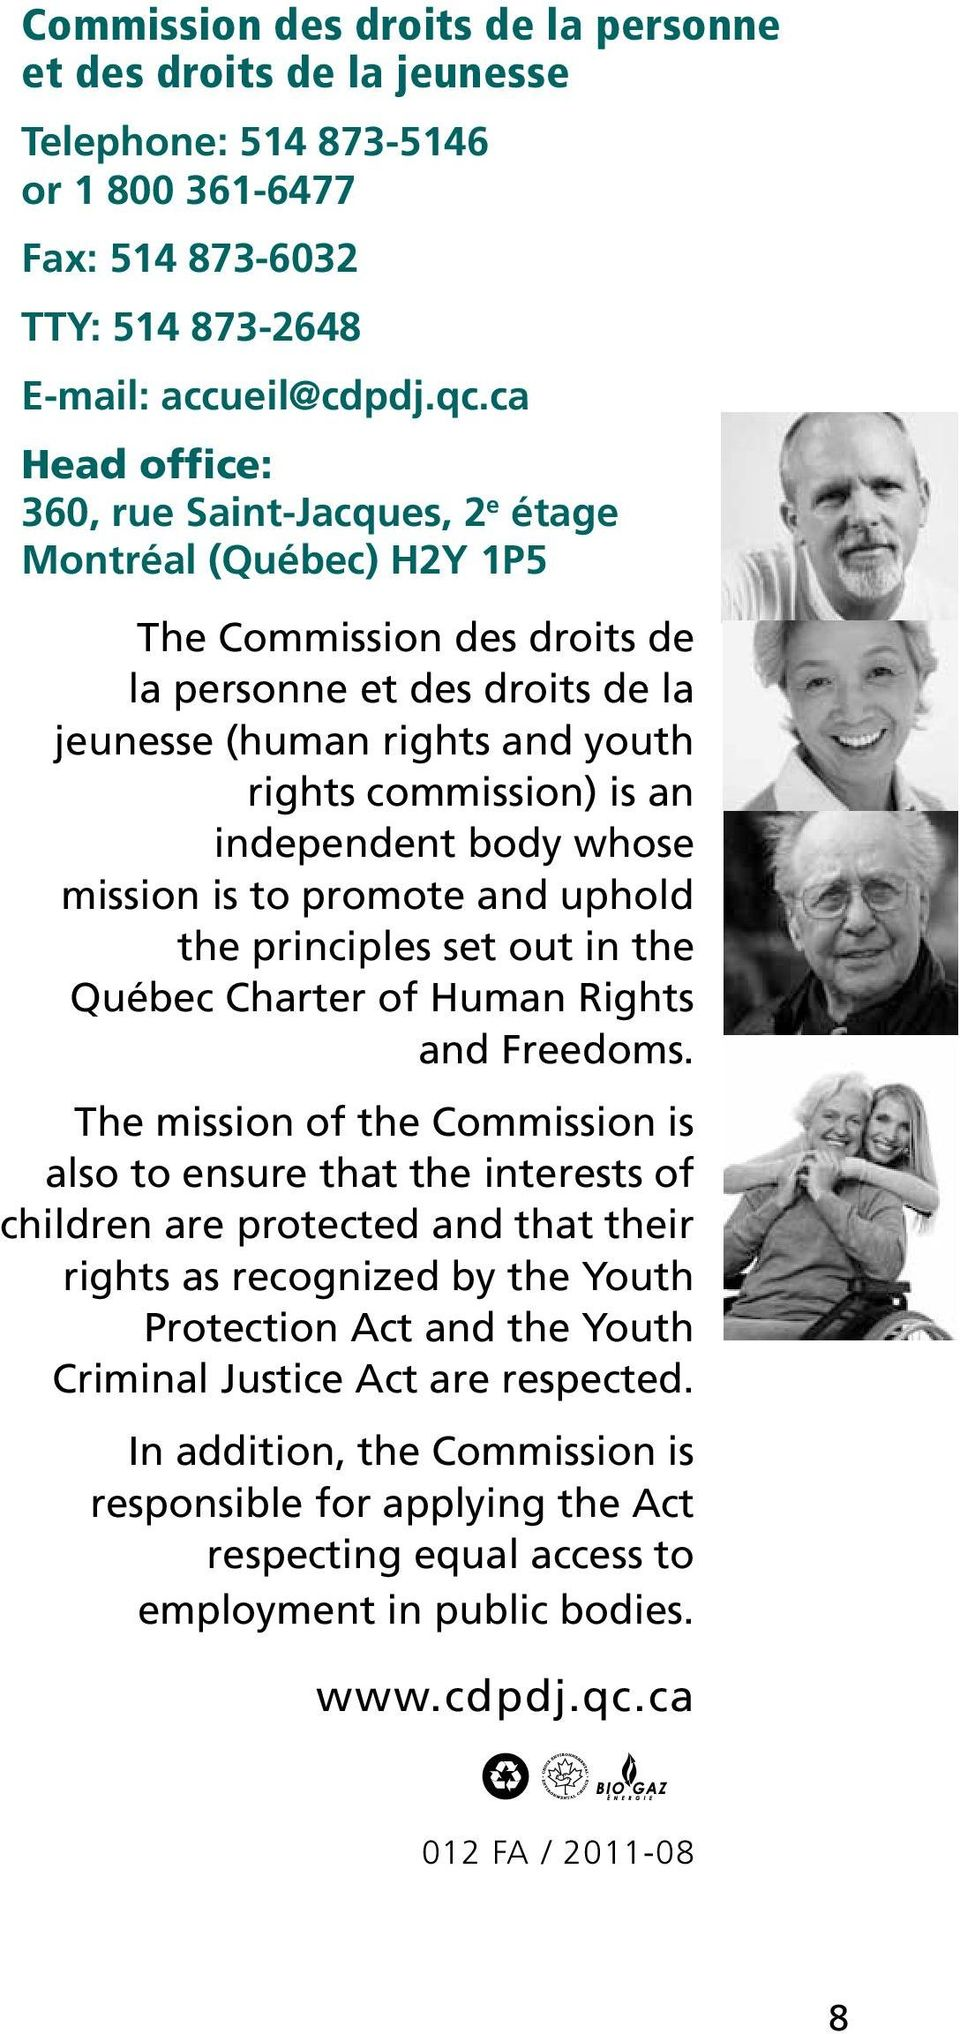 independent body whose mission is to promote and uphold the principles set out in the Québec Charter of Human Rights and Freedoms.